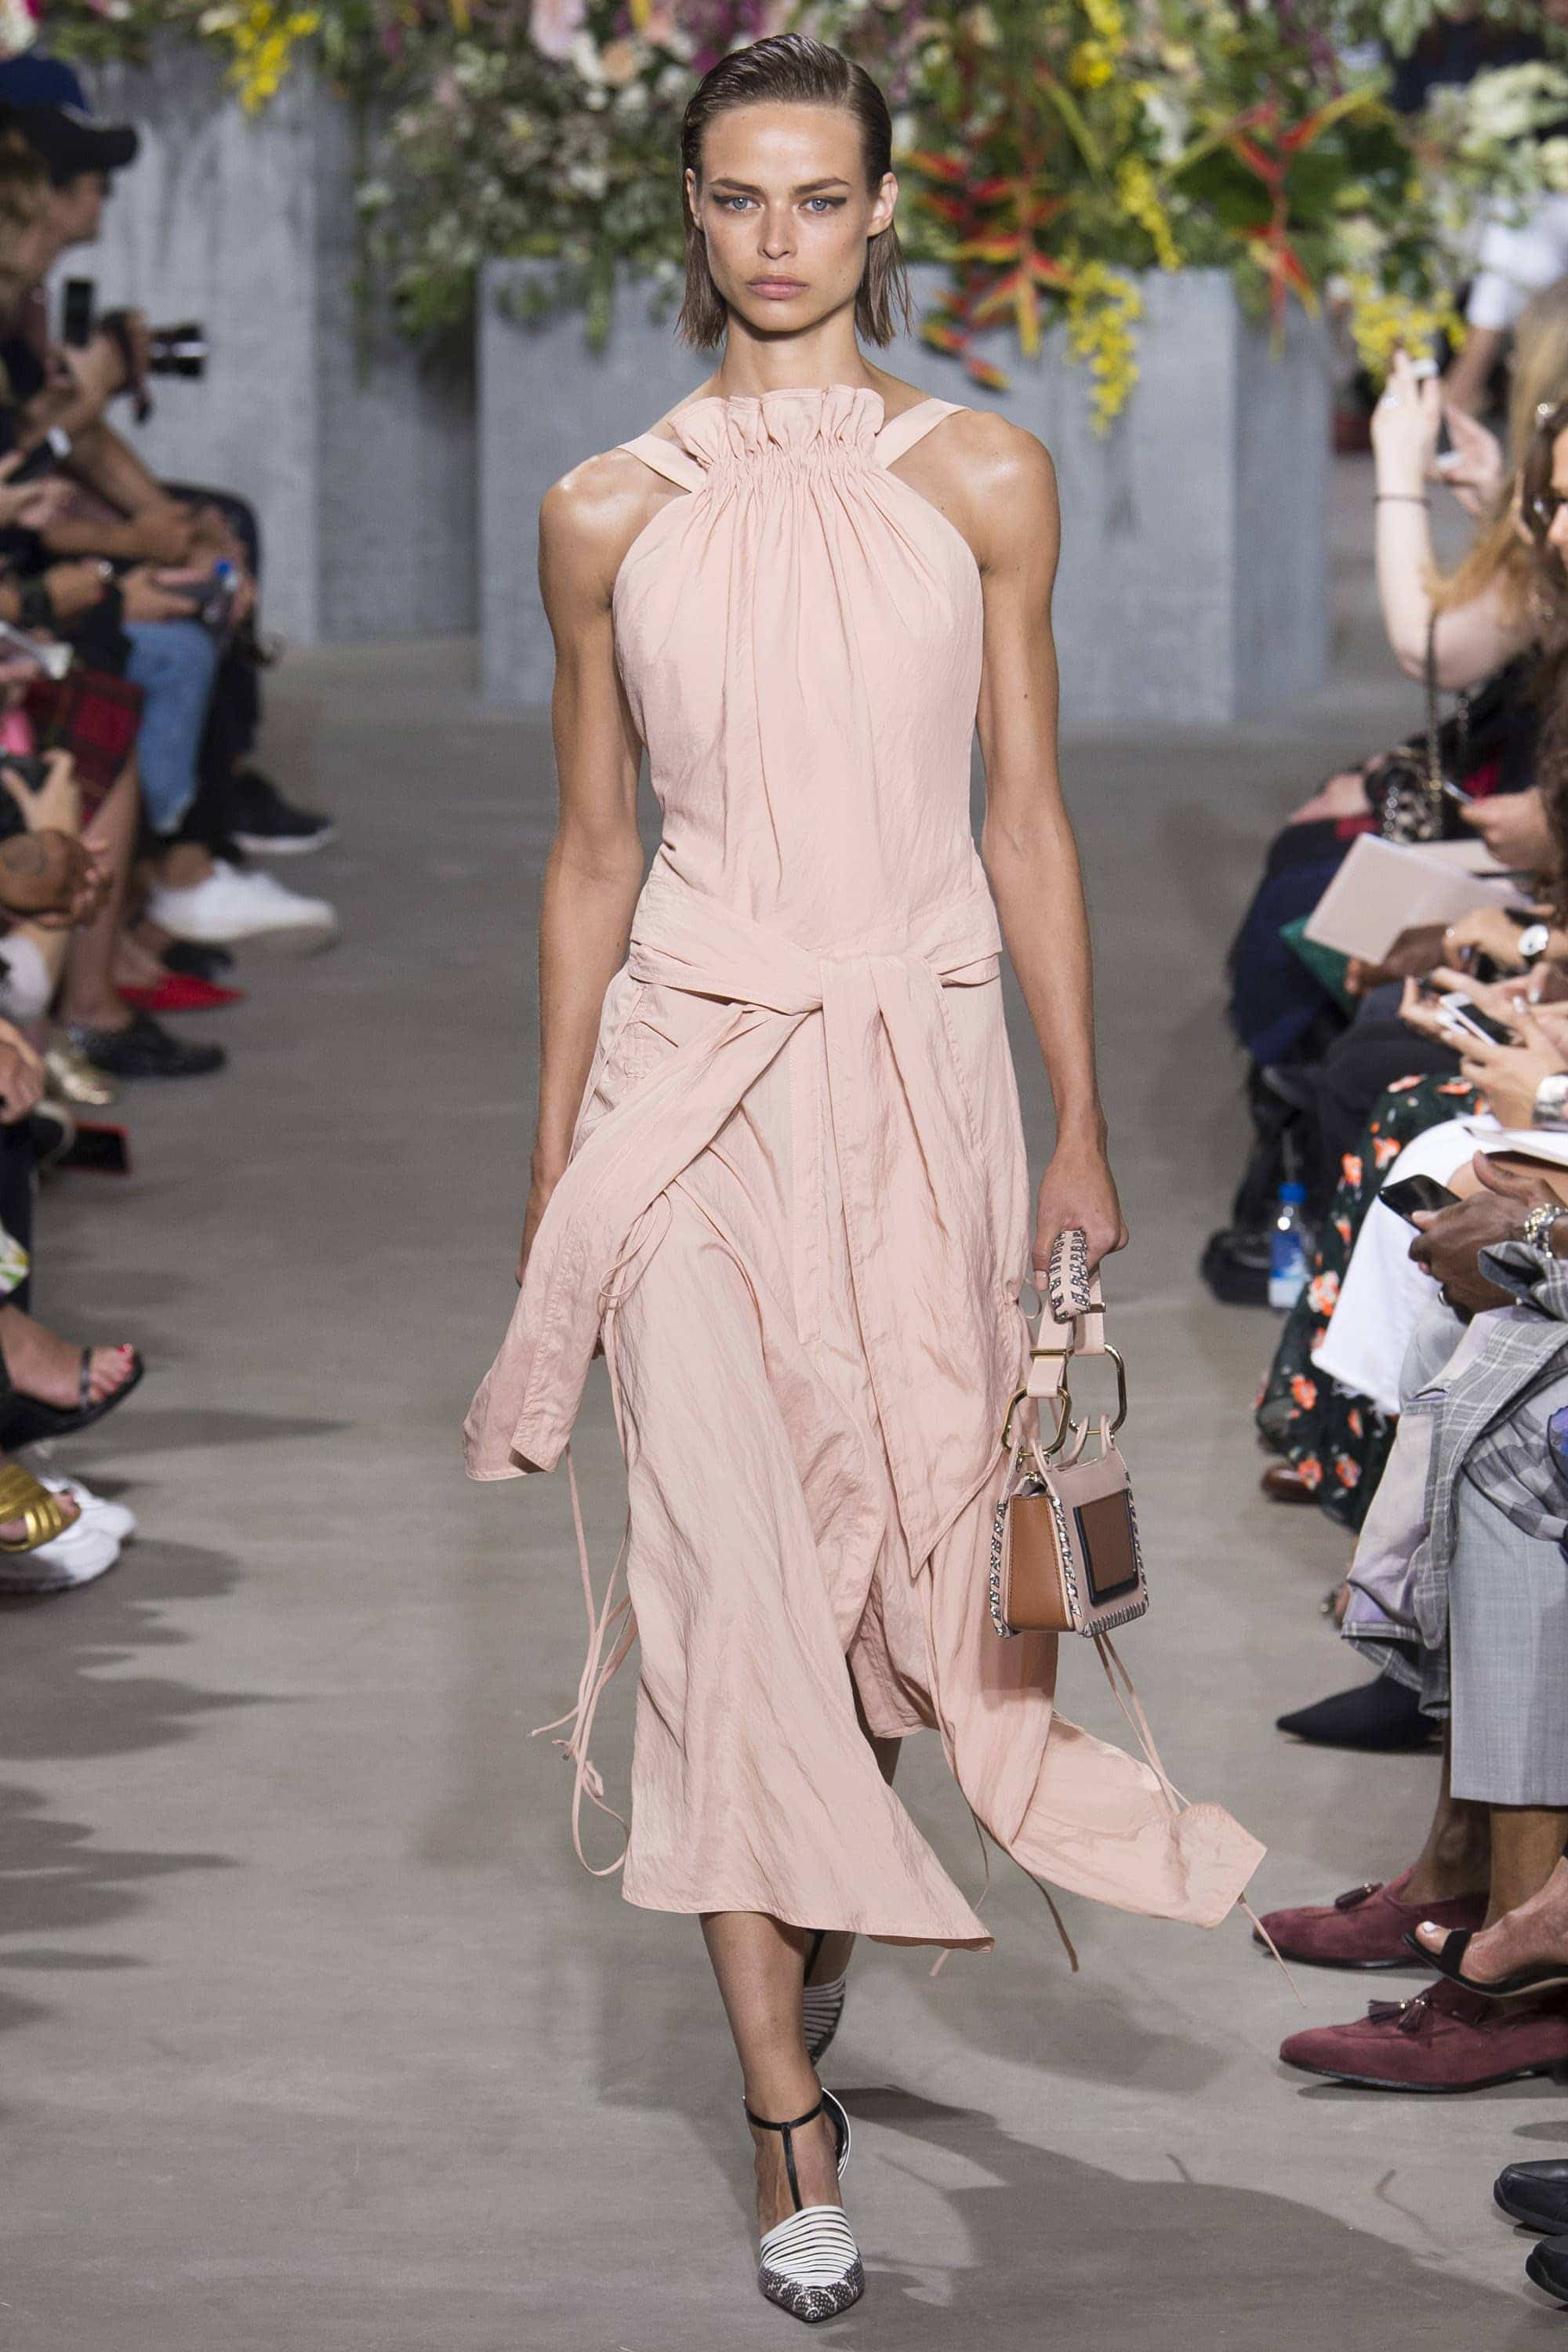 Outfit, Fashion, Fashion Show, Catwalk, Model, Model Life, Runway, Dress, Look, OOTD, Fashion Week, Trend Report, Trends, Trendy, SS18, Spring Summer 2018, NYFW, New York, New York Fashion Week, Runway Walk, Jason Wu, Orange, Pencil Skir